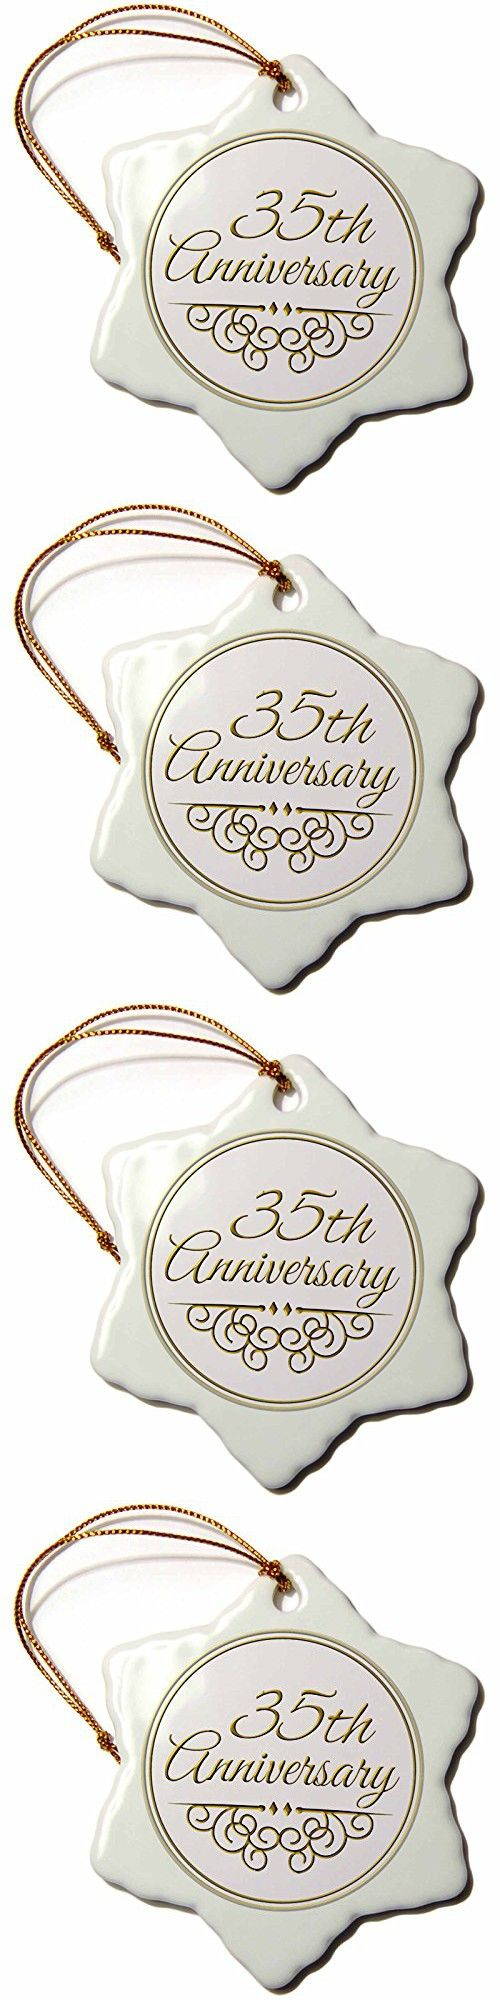 """3dRose LLC orn_154477_1 Porcelain Snowflake Ornament, 3-Inch, """"35Th Anniversary Gift-Gold Text Celebrating Wedding Anniversaries-35 Years Married"""""""